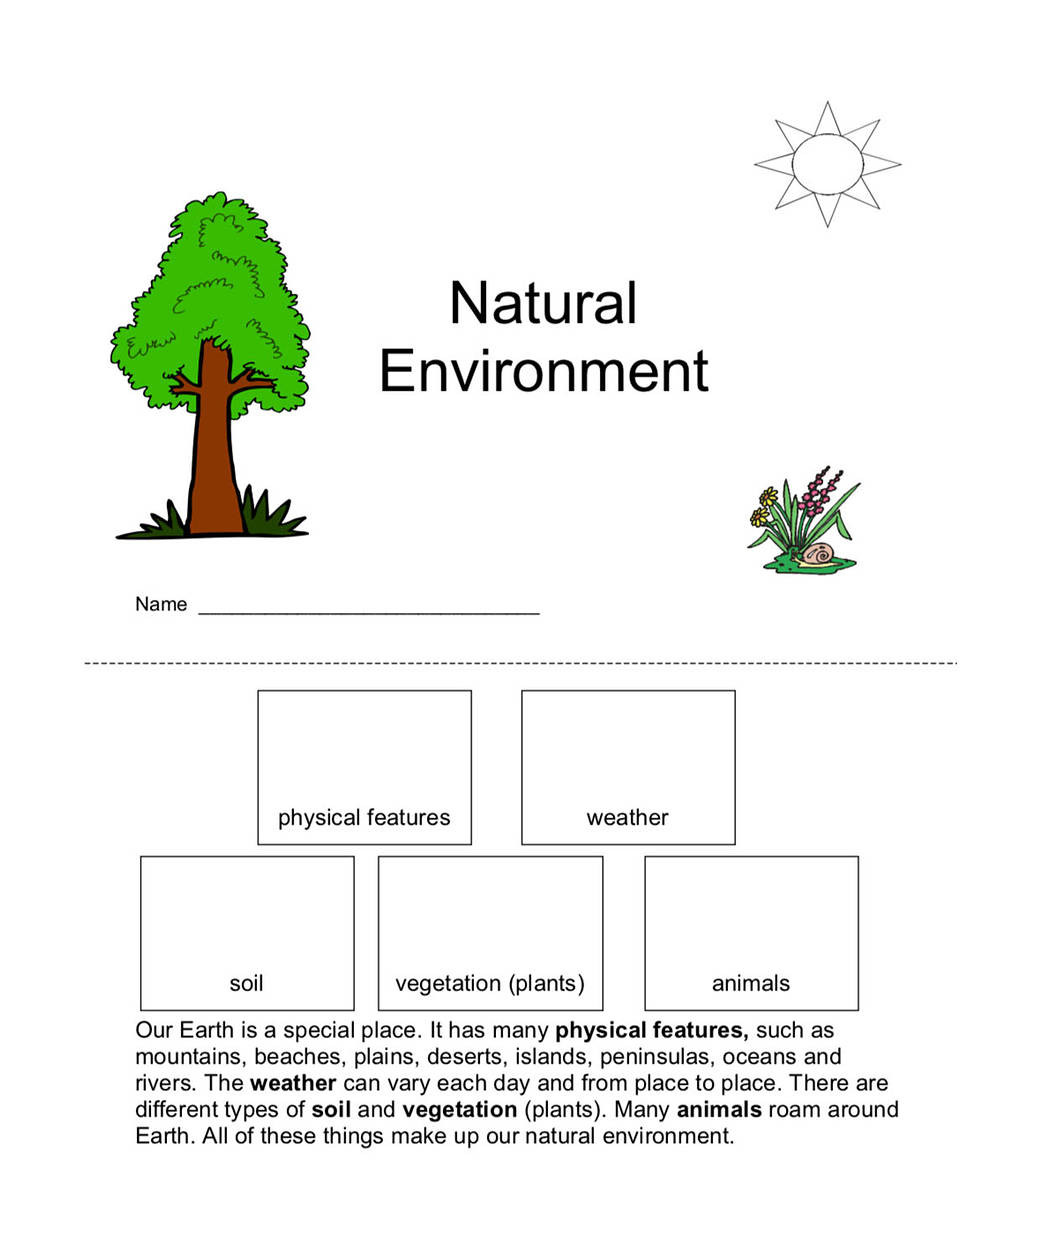 Natural Resources Worksheets 1st Grade Lesson 1 Natural Resources On Earth